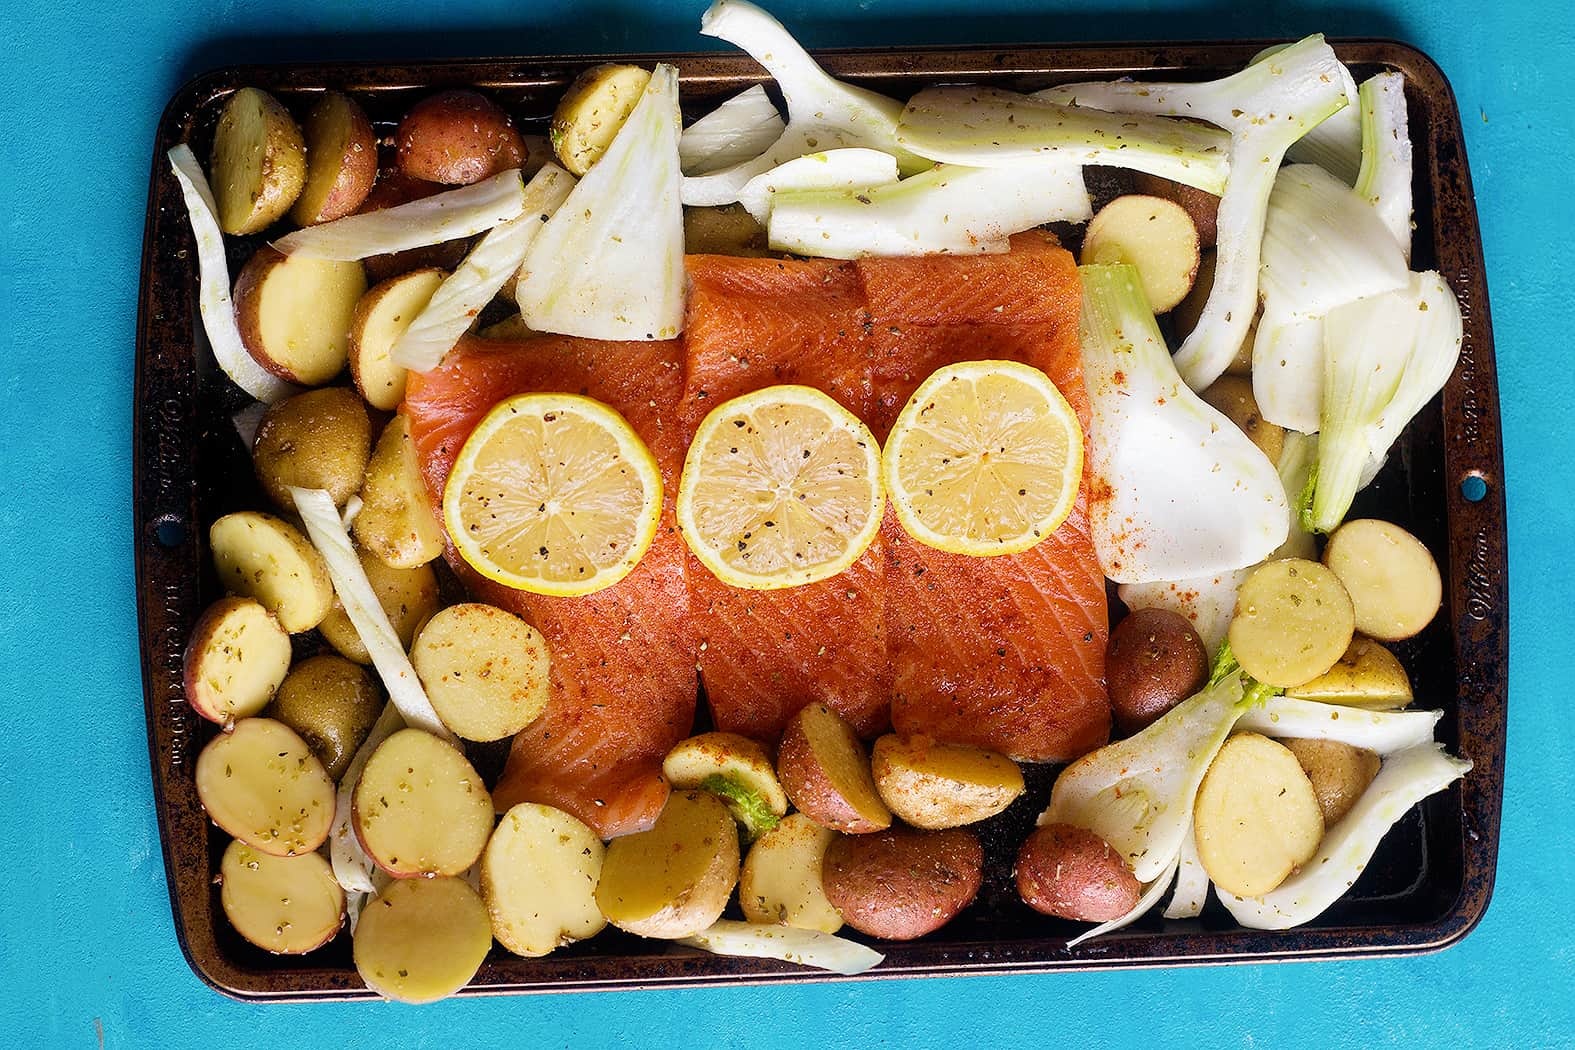 To make baked salmon fillet, mix all the spices with lemon and olive oil and brush them on salmon fillet. Spread the veggies around and bake.